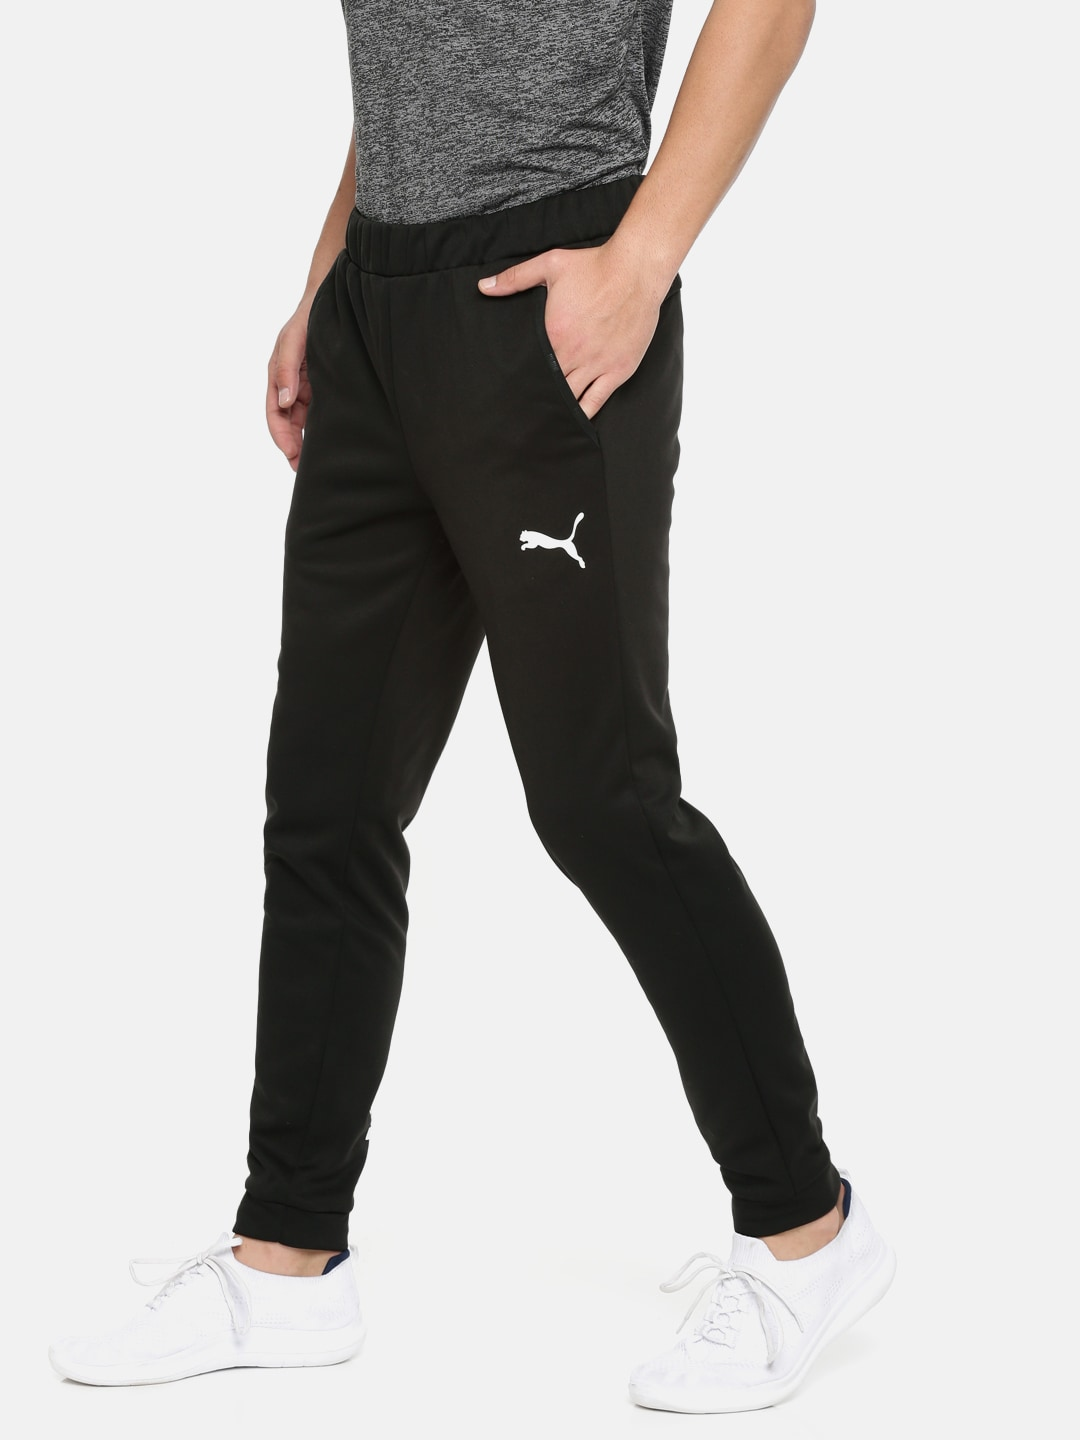 cc9d0b794616 Puma Slim Track Pants Pants - Buy Puma Slim Track Pants Pants online in  India